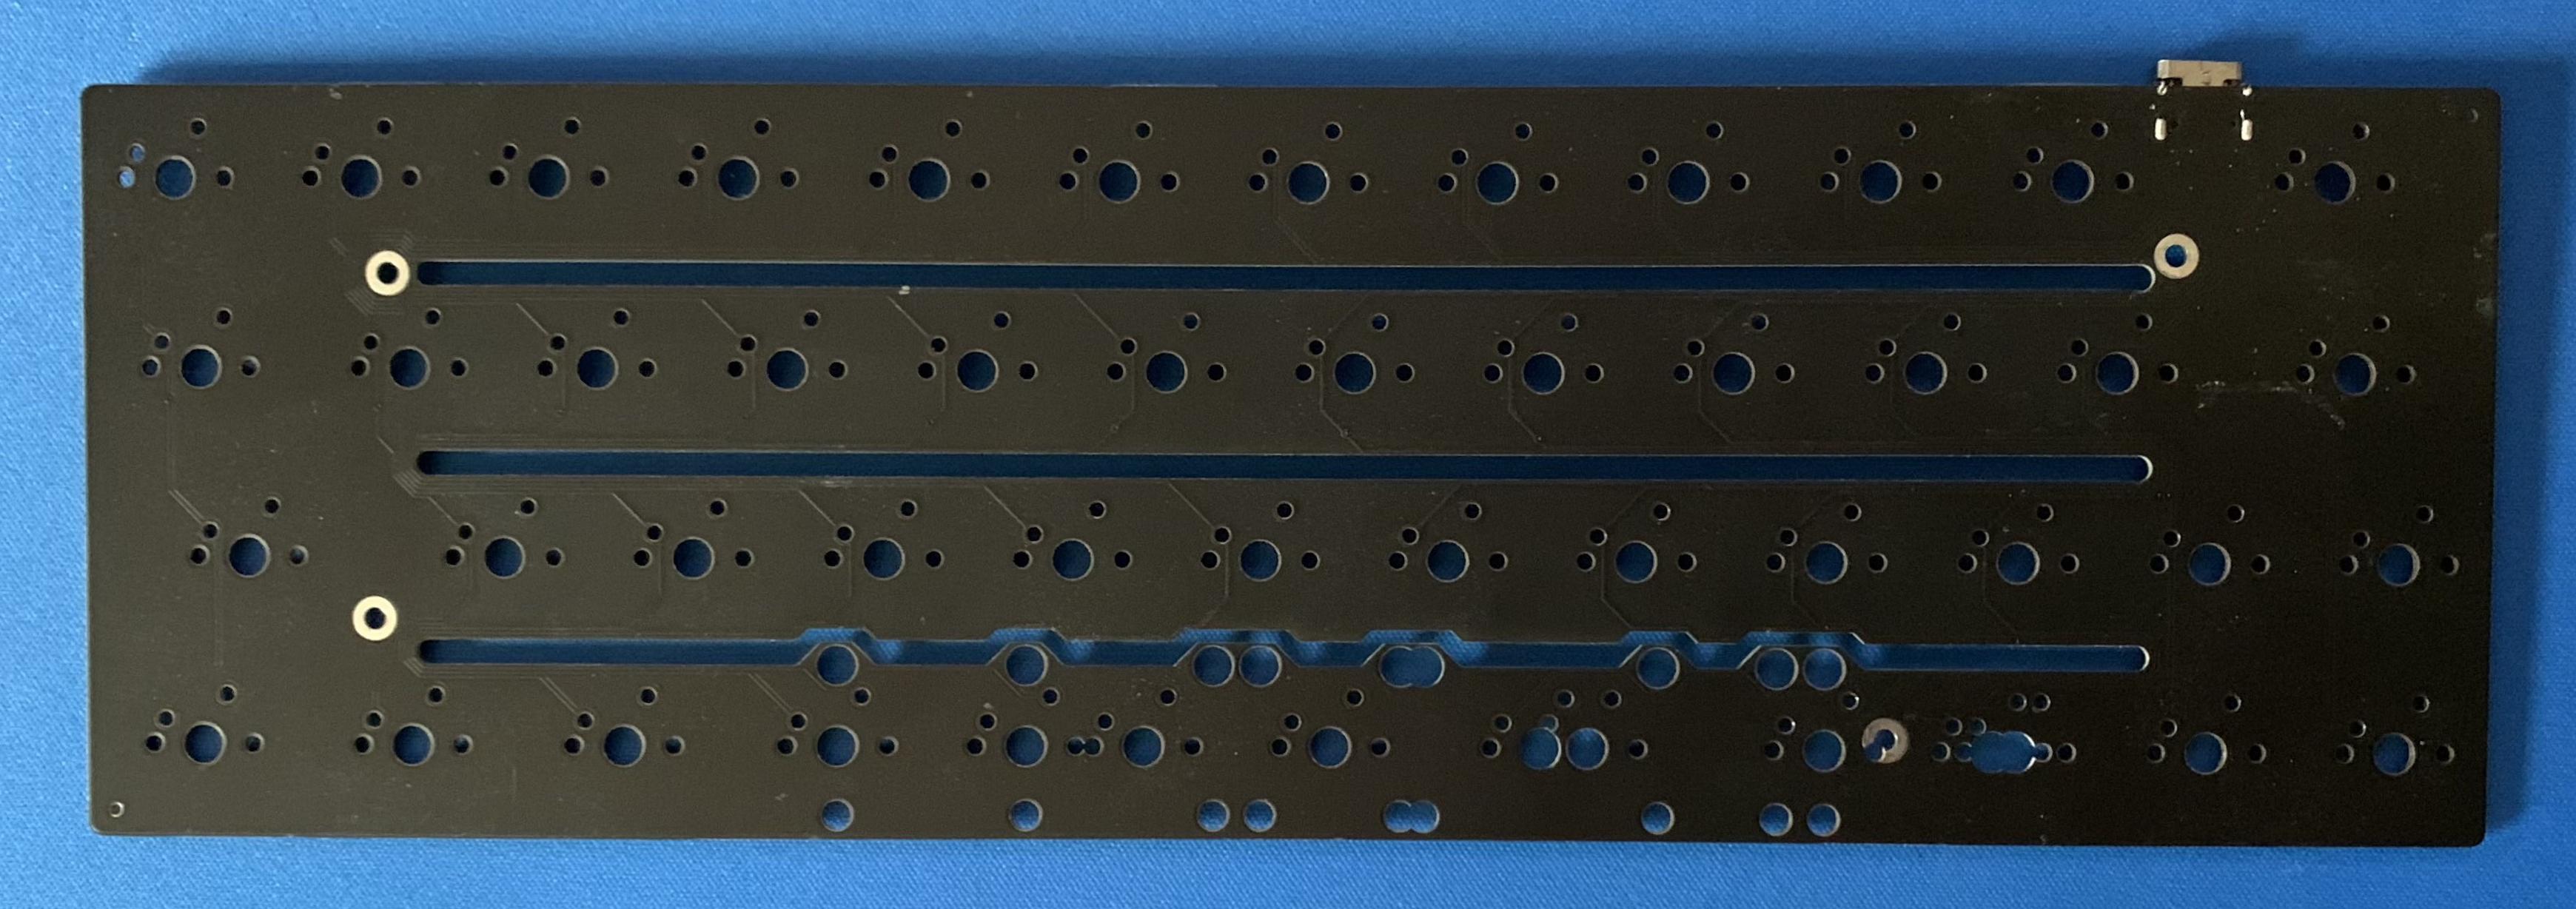 Front of the prototype Model-V PCB